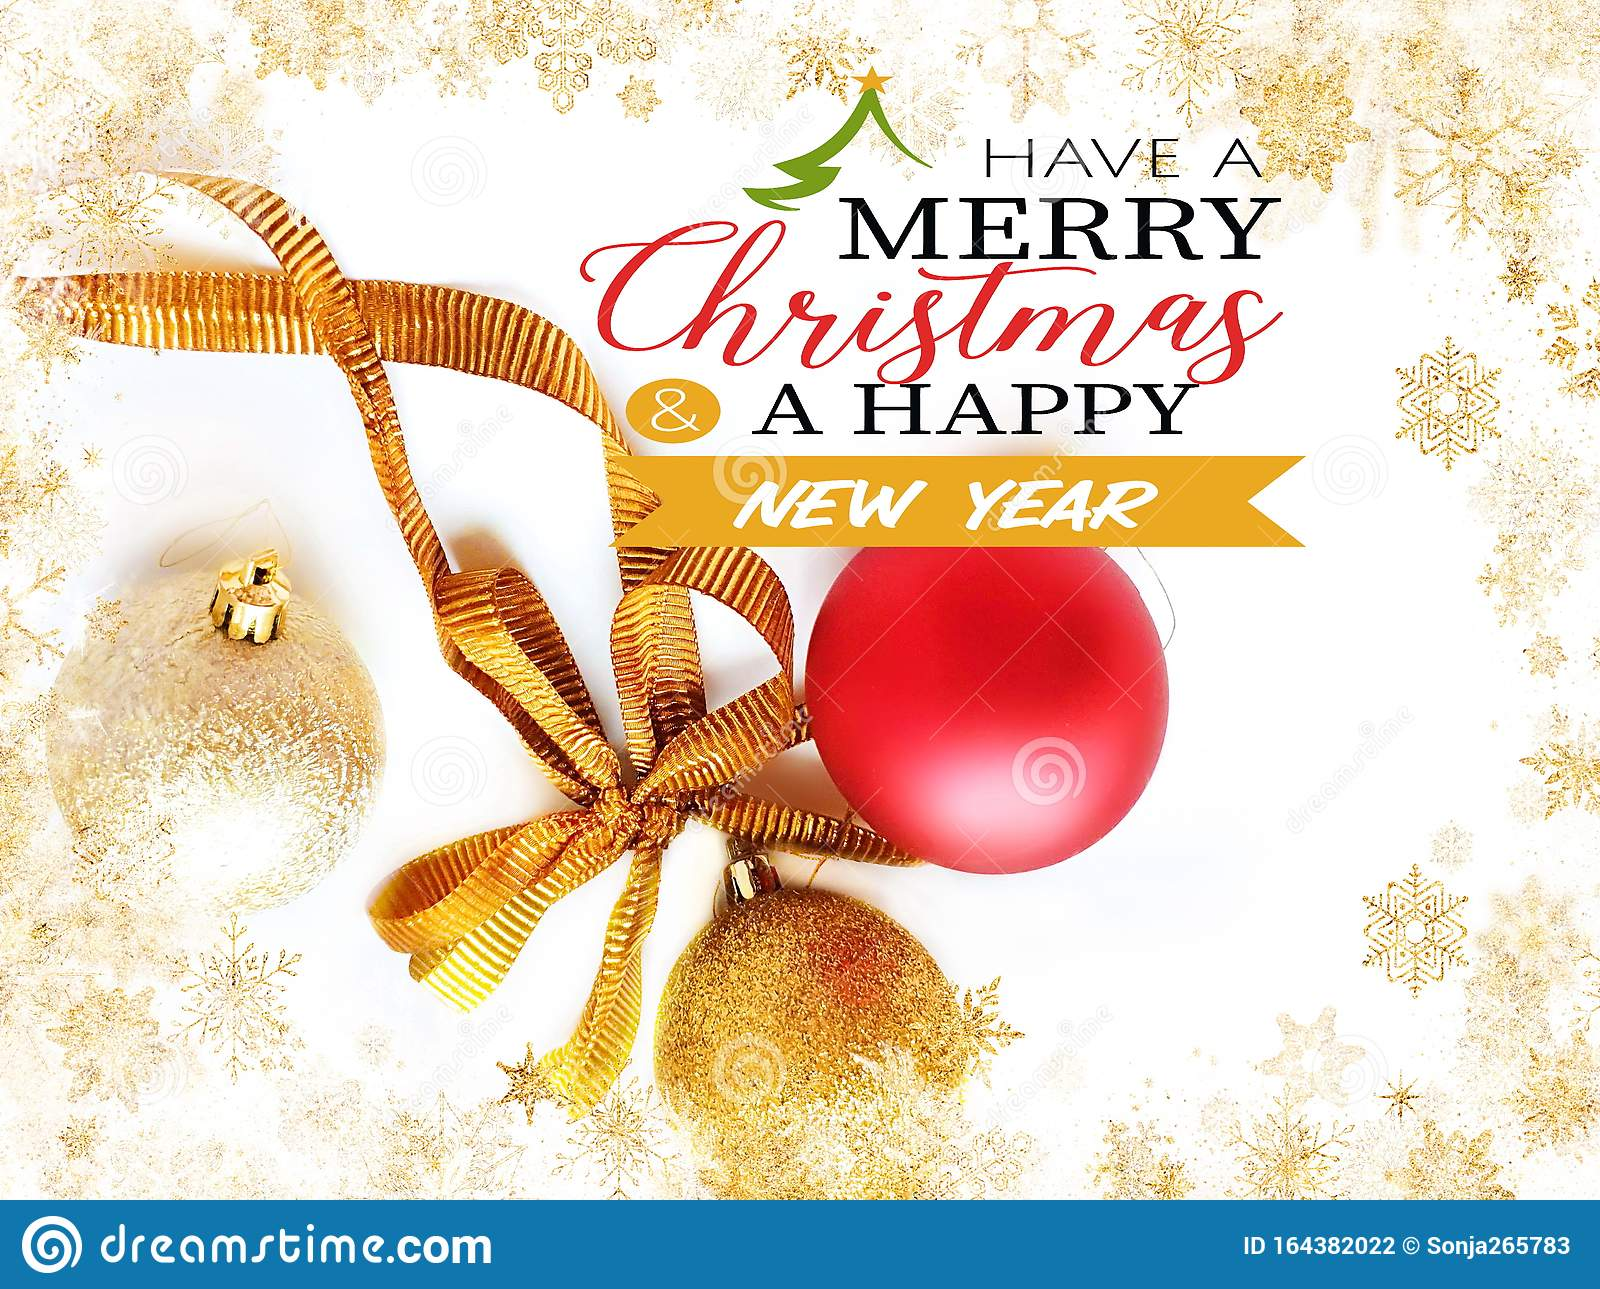 merry christmas and happy new year wishes greetings card red silver and gold ball on white background with best quotes text stock photo image of abstract design 164382022 dreamstime com